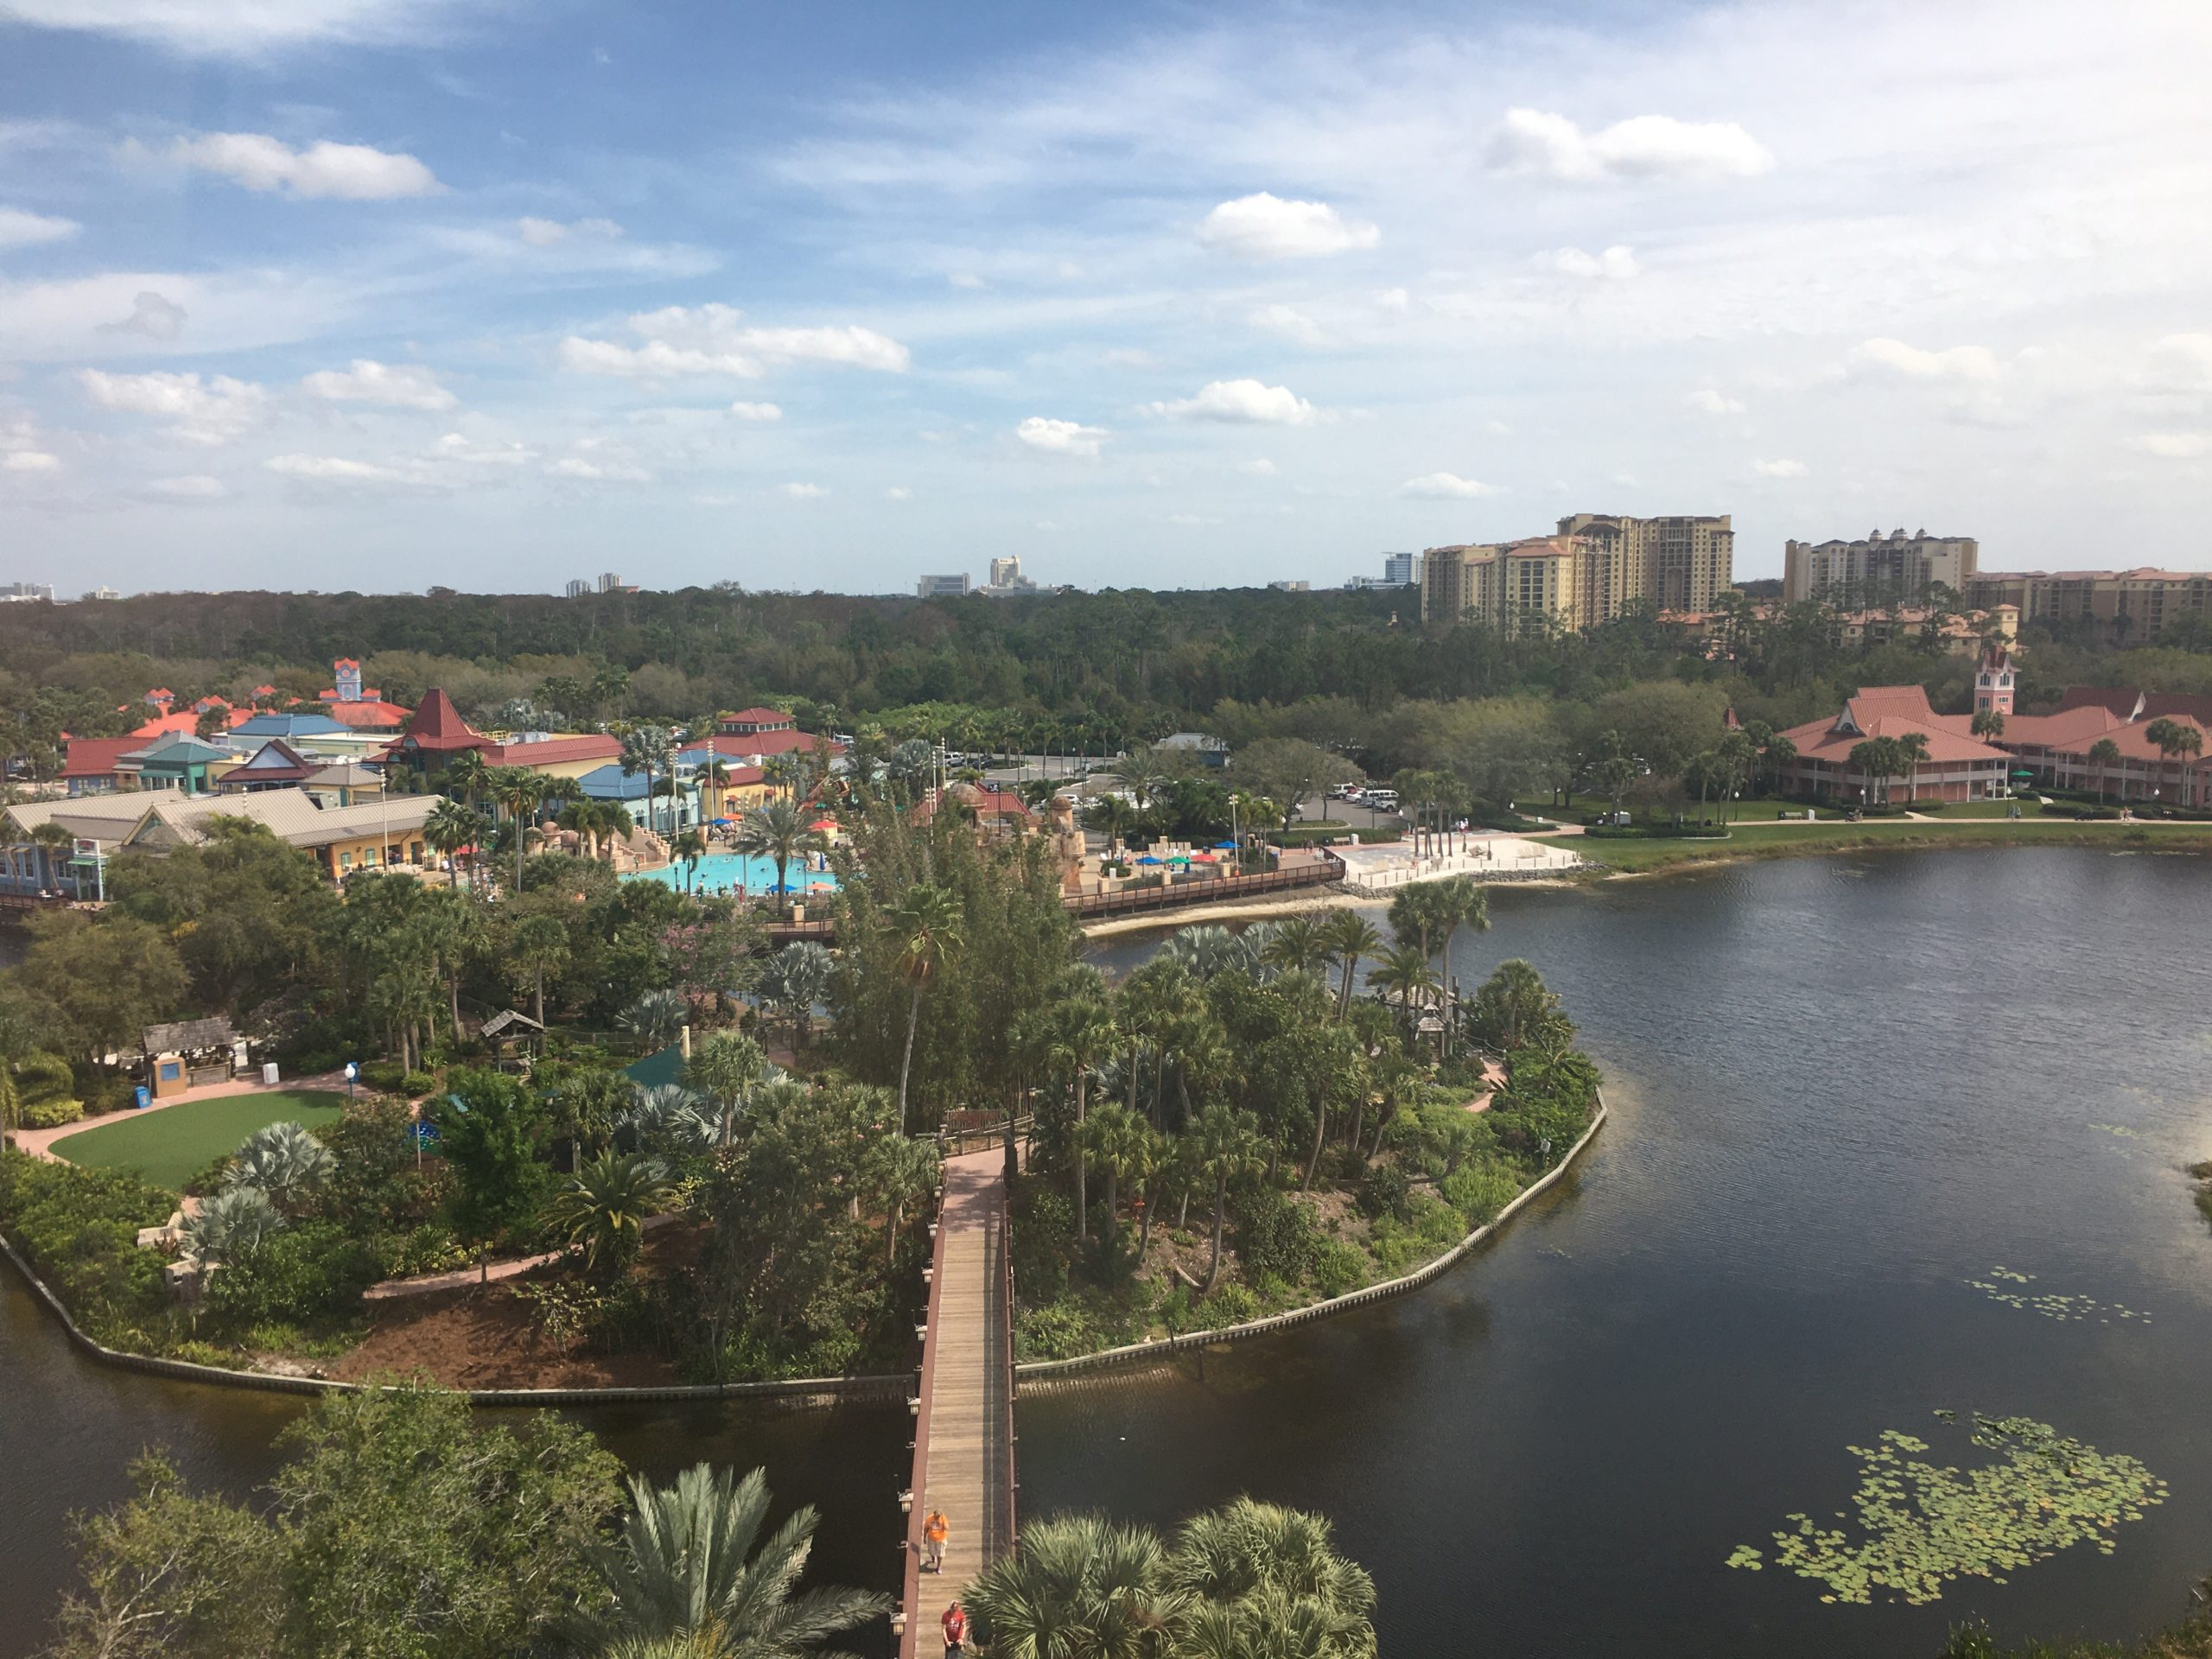 birdseye view from Disney Skyliner coming into Caribbean Beach resort